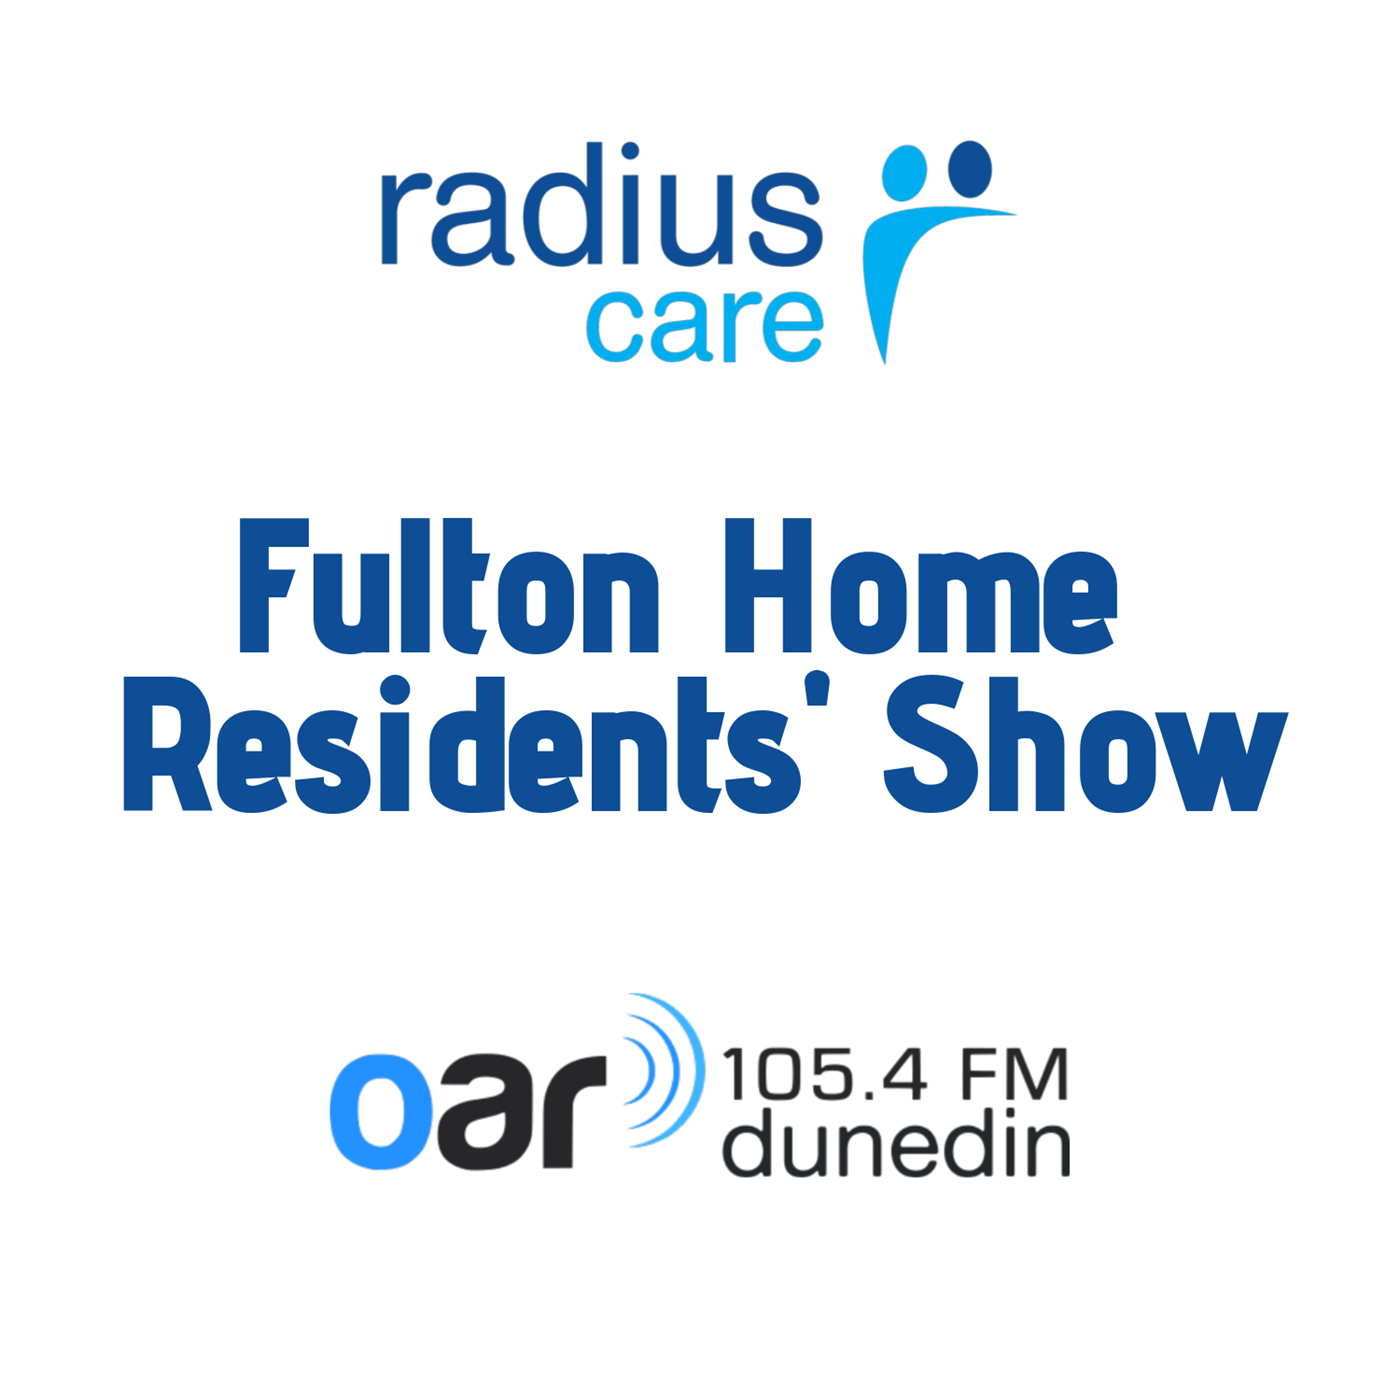 Fulton Home Residents' Show - 27-02-2020 - Country Western Flavour